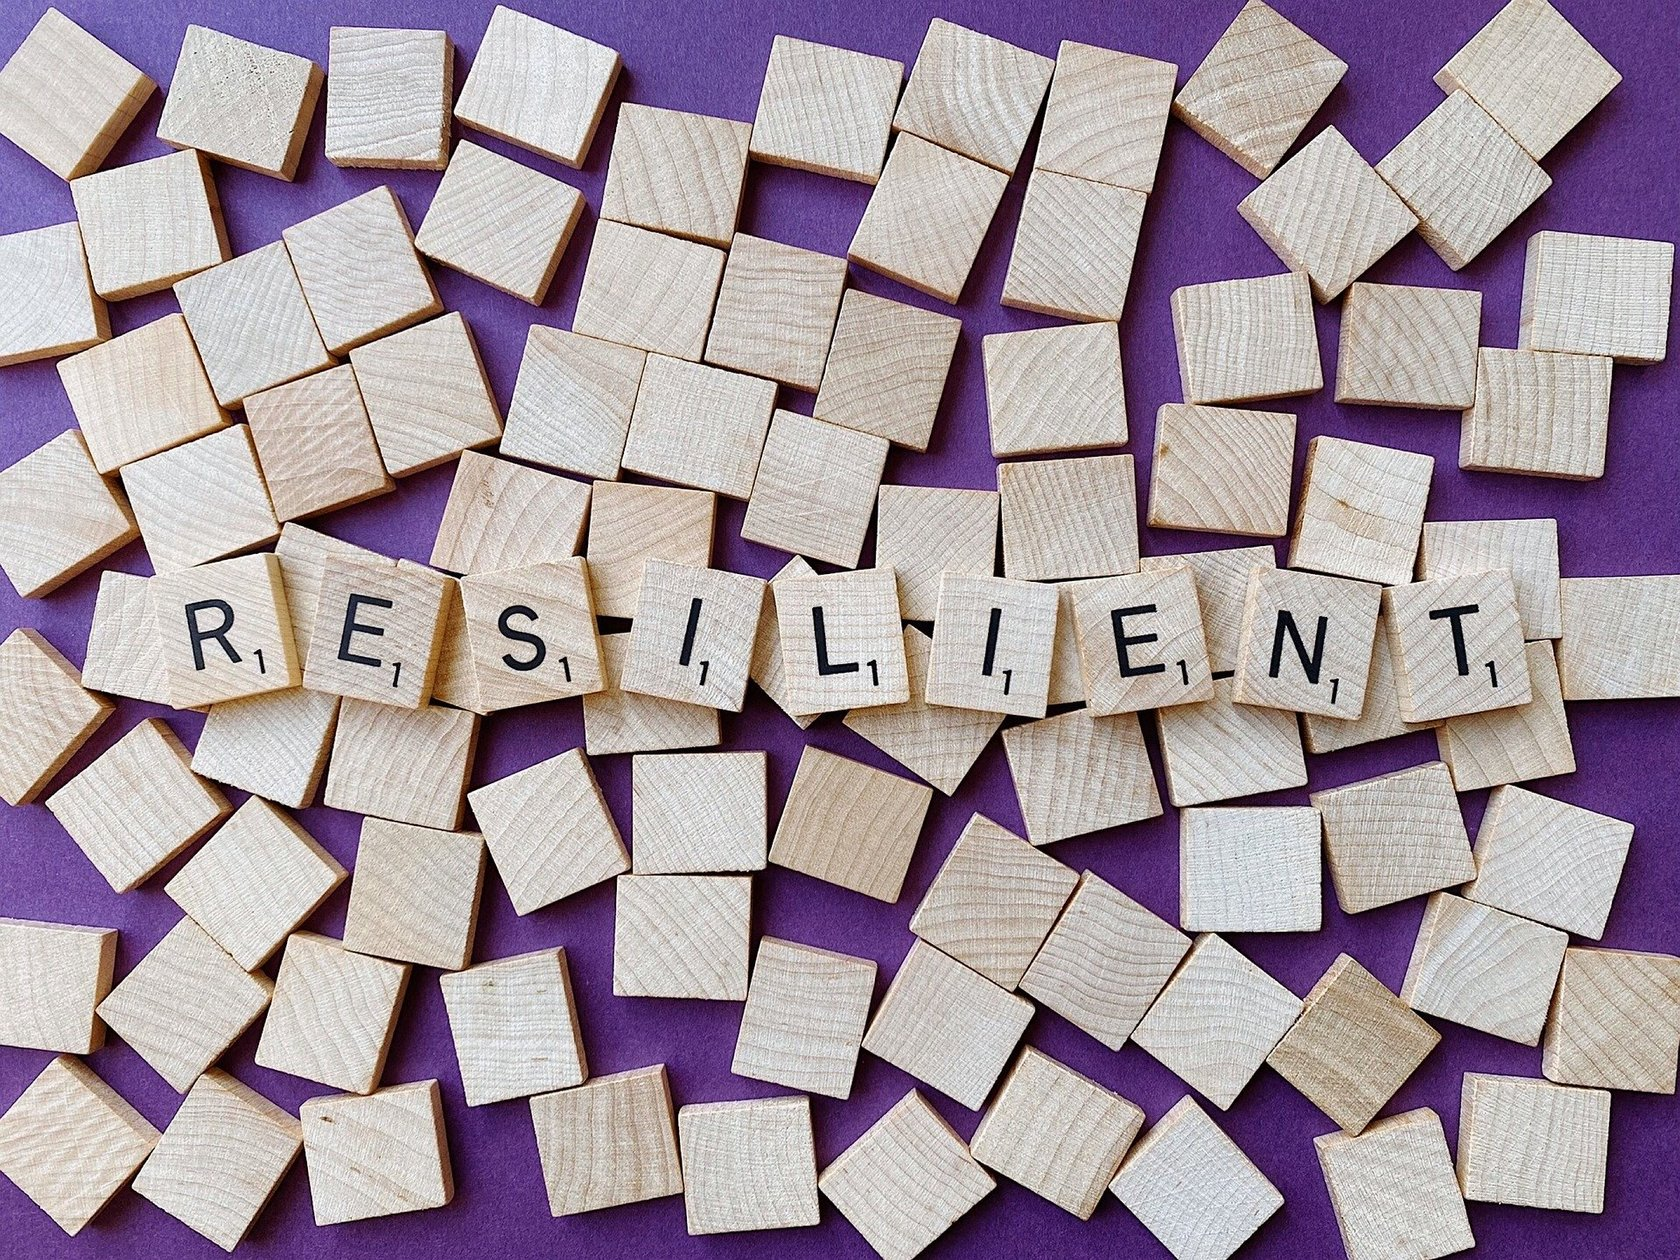 Resilience Resources Weekly: Cognitive Flexibility